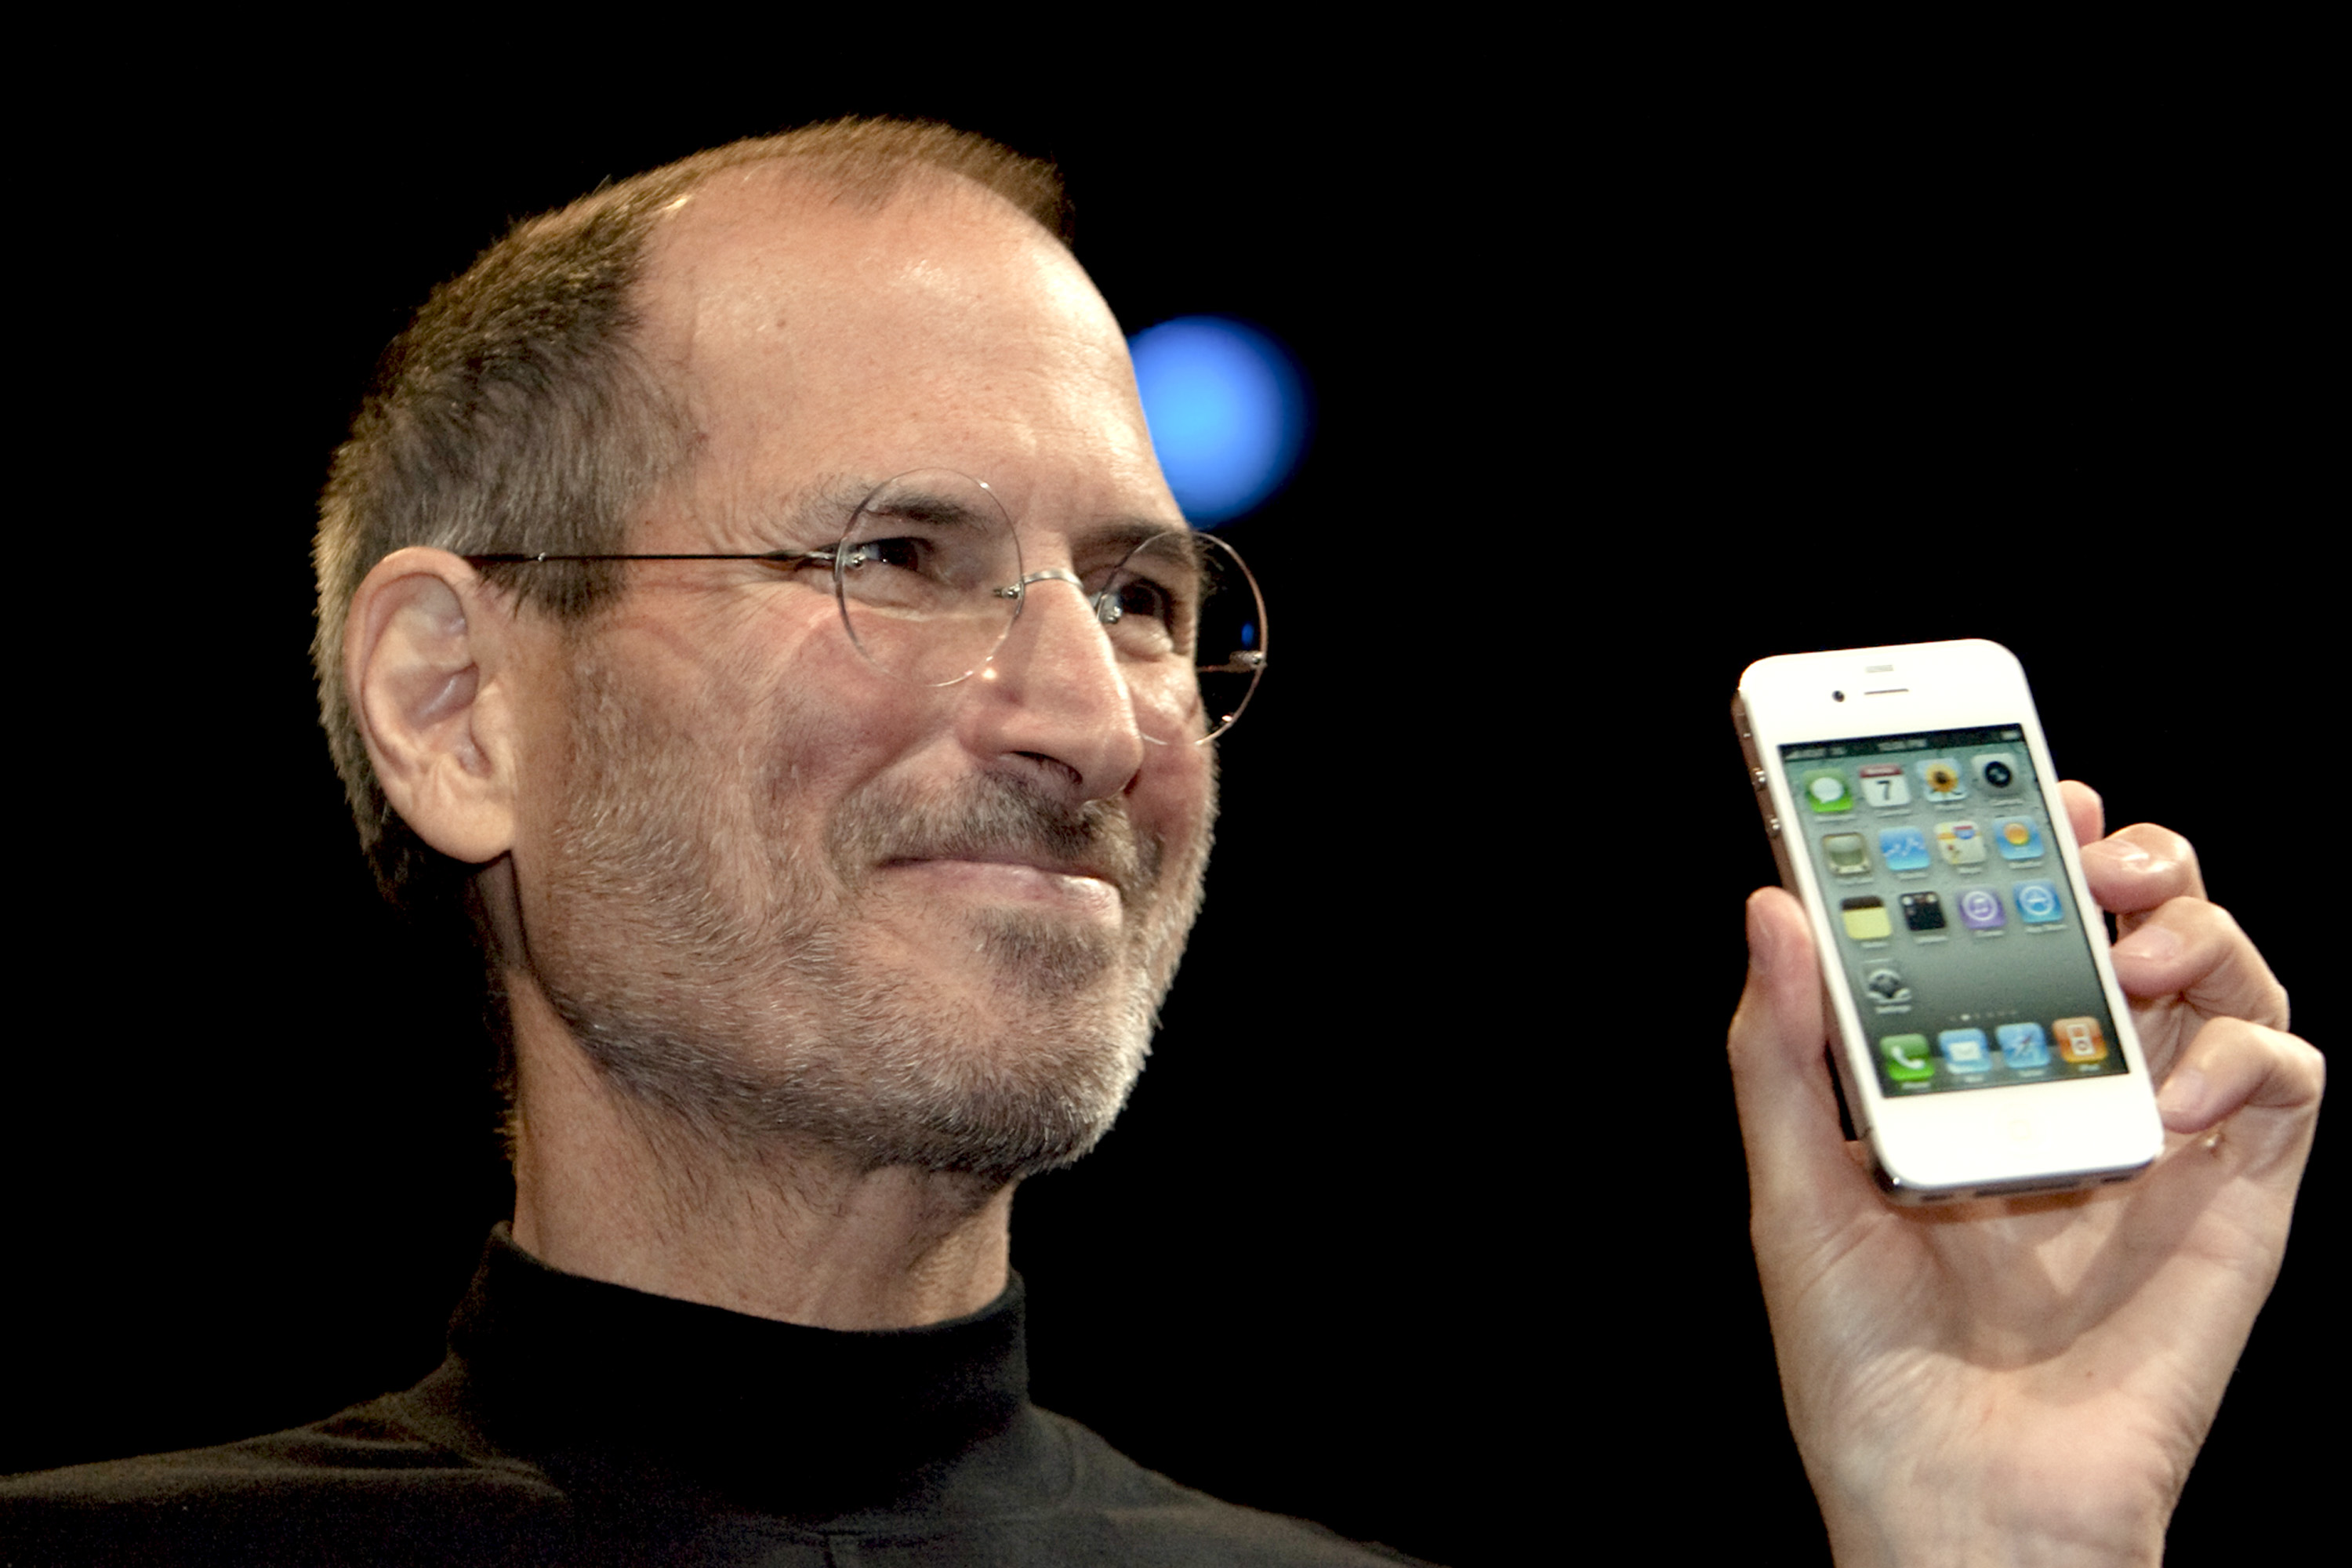 Steve Jobs, chief executive officer of Apple, unveils the iPhone 4 during his keynote address at the Apple Worldwide Developers Conference (WWDC) in San Francisco, California, U.S., on Monday, June 7, 2010.